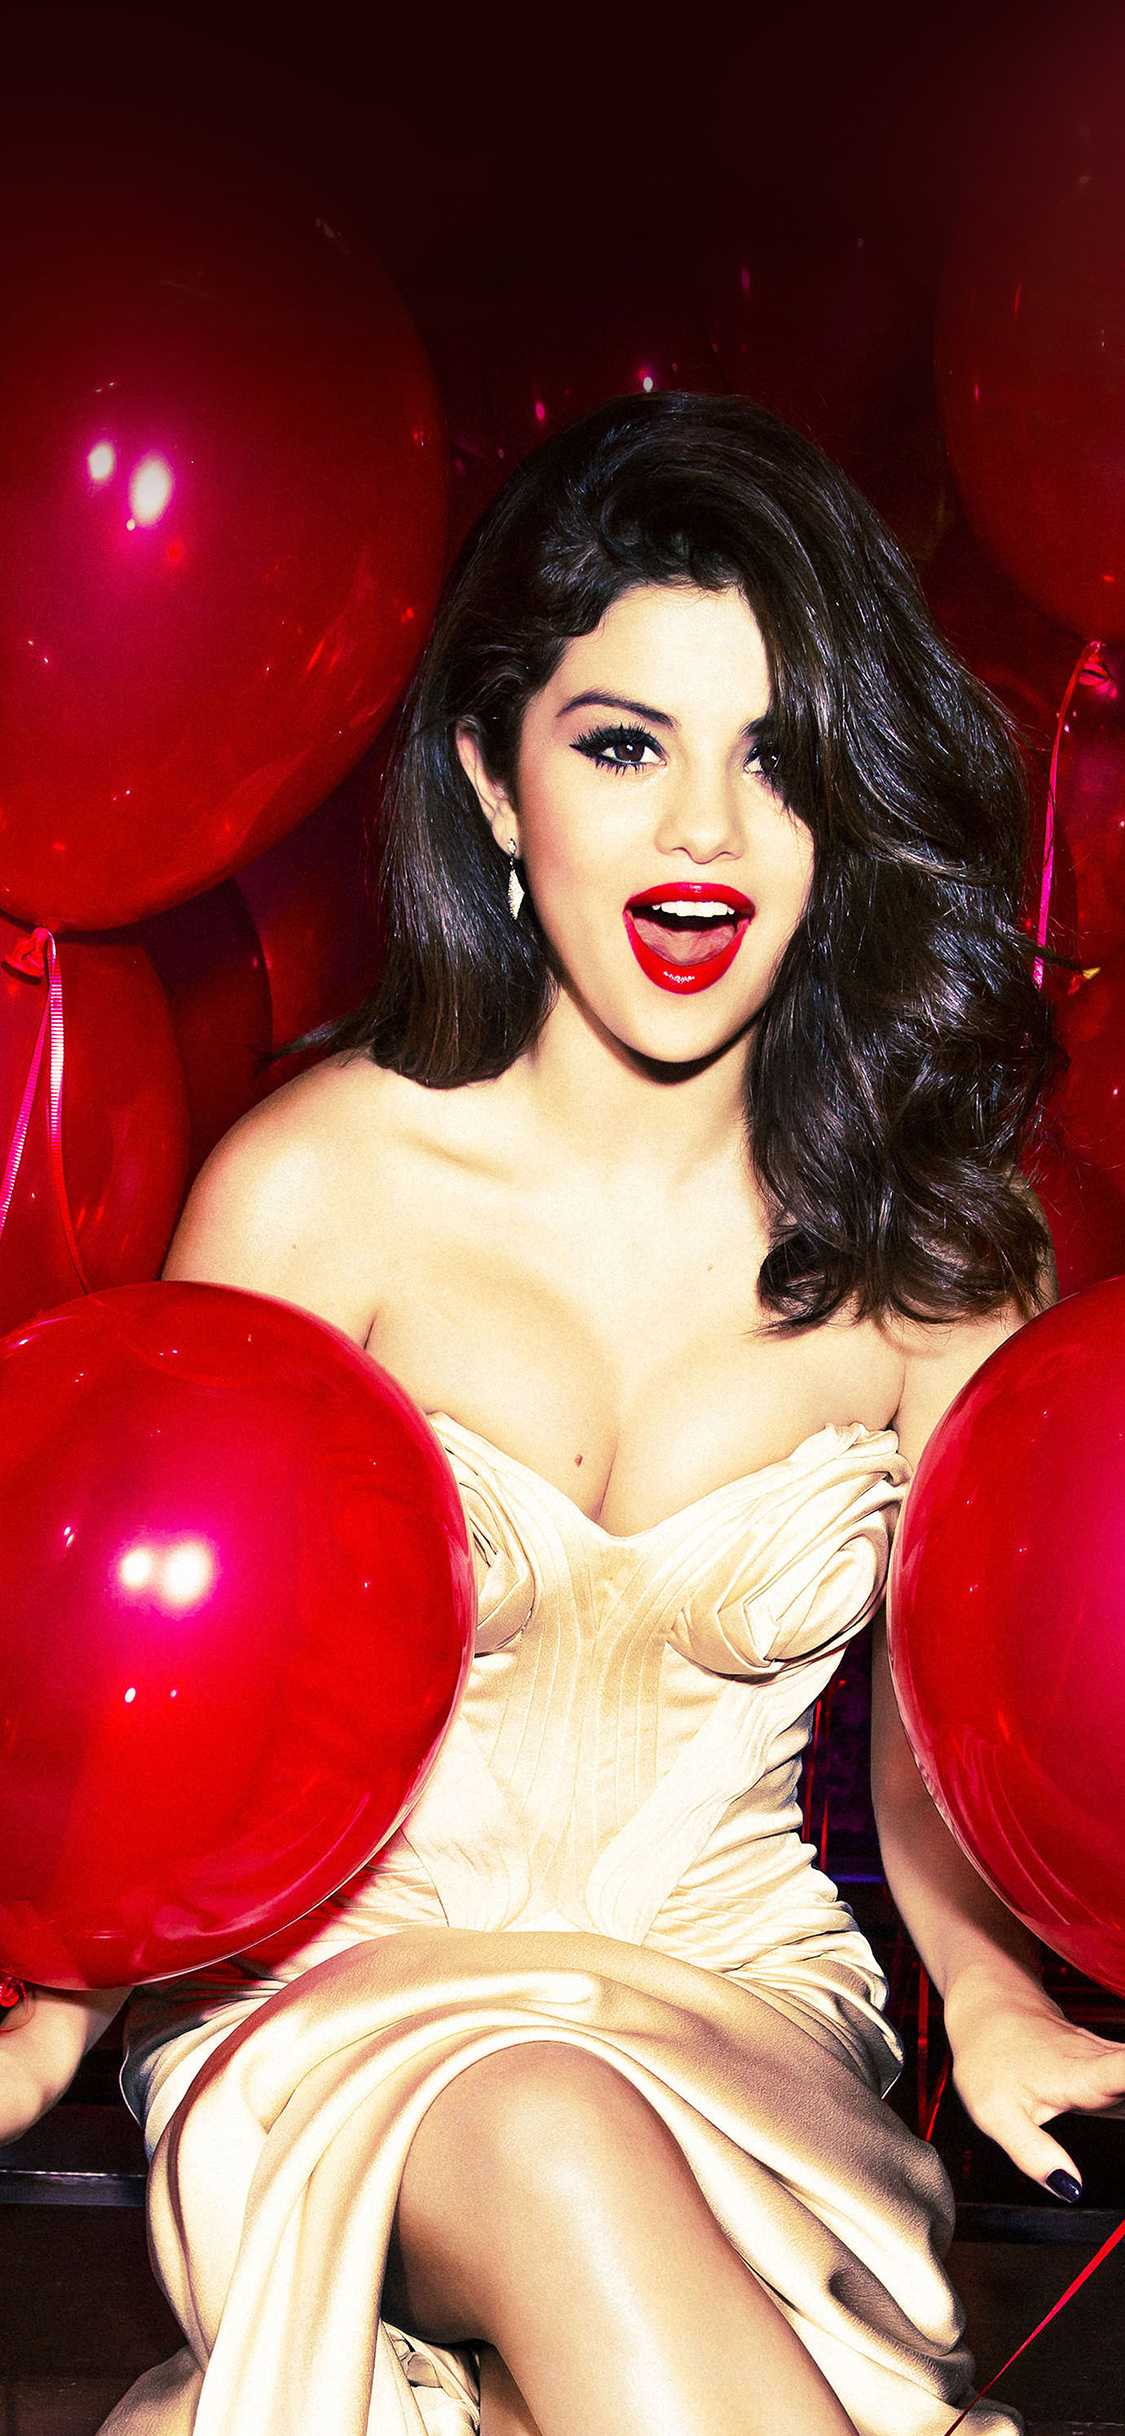 Lady Butterfly Hd Wallpaper Hh76 Selena Gomez Red Dress Balloon Party Wallpaper